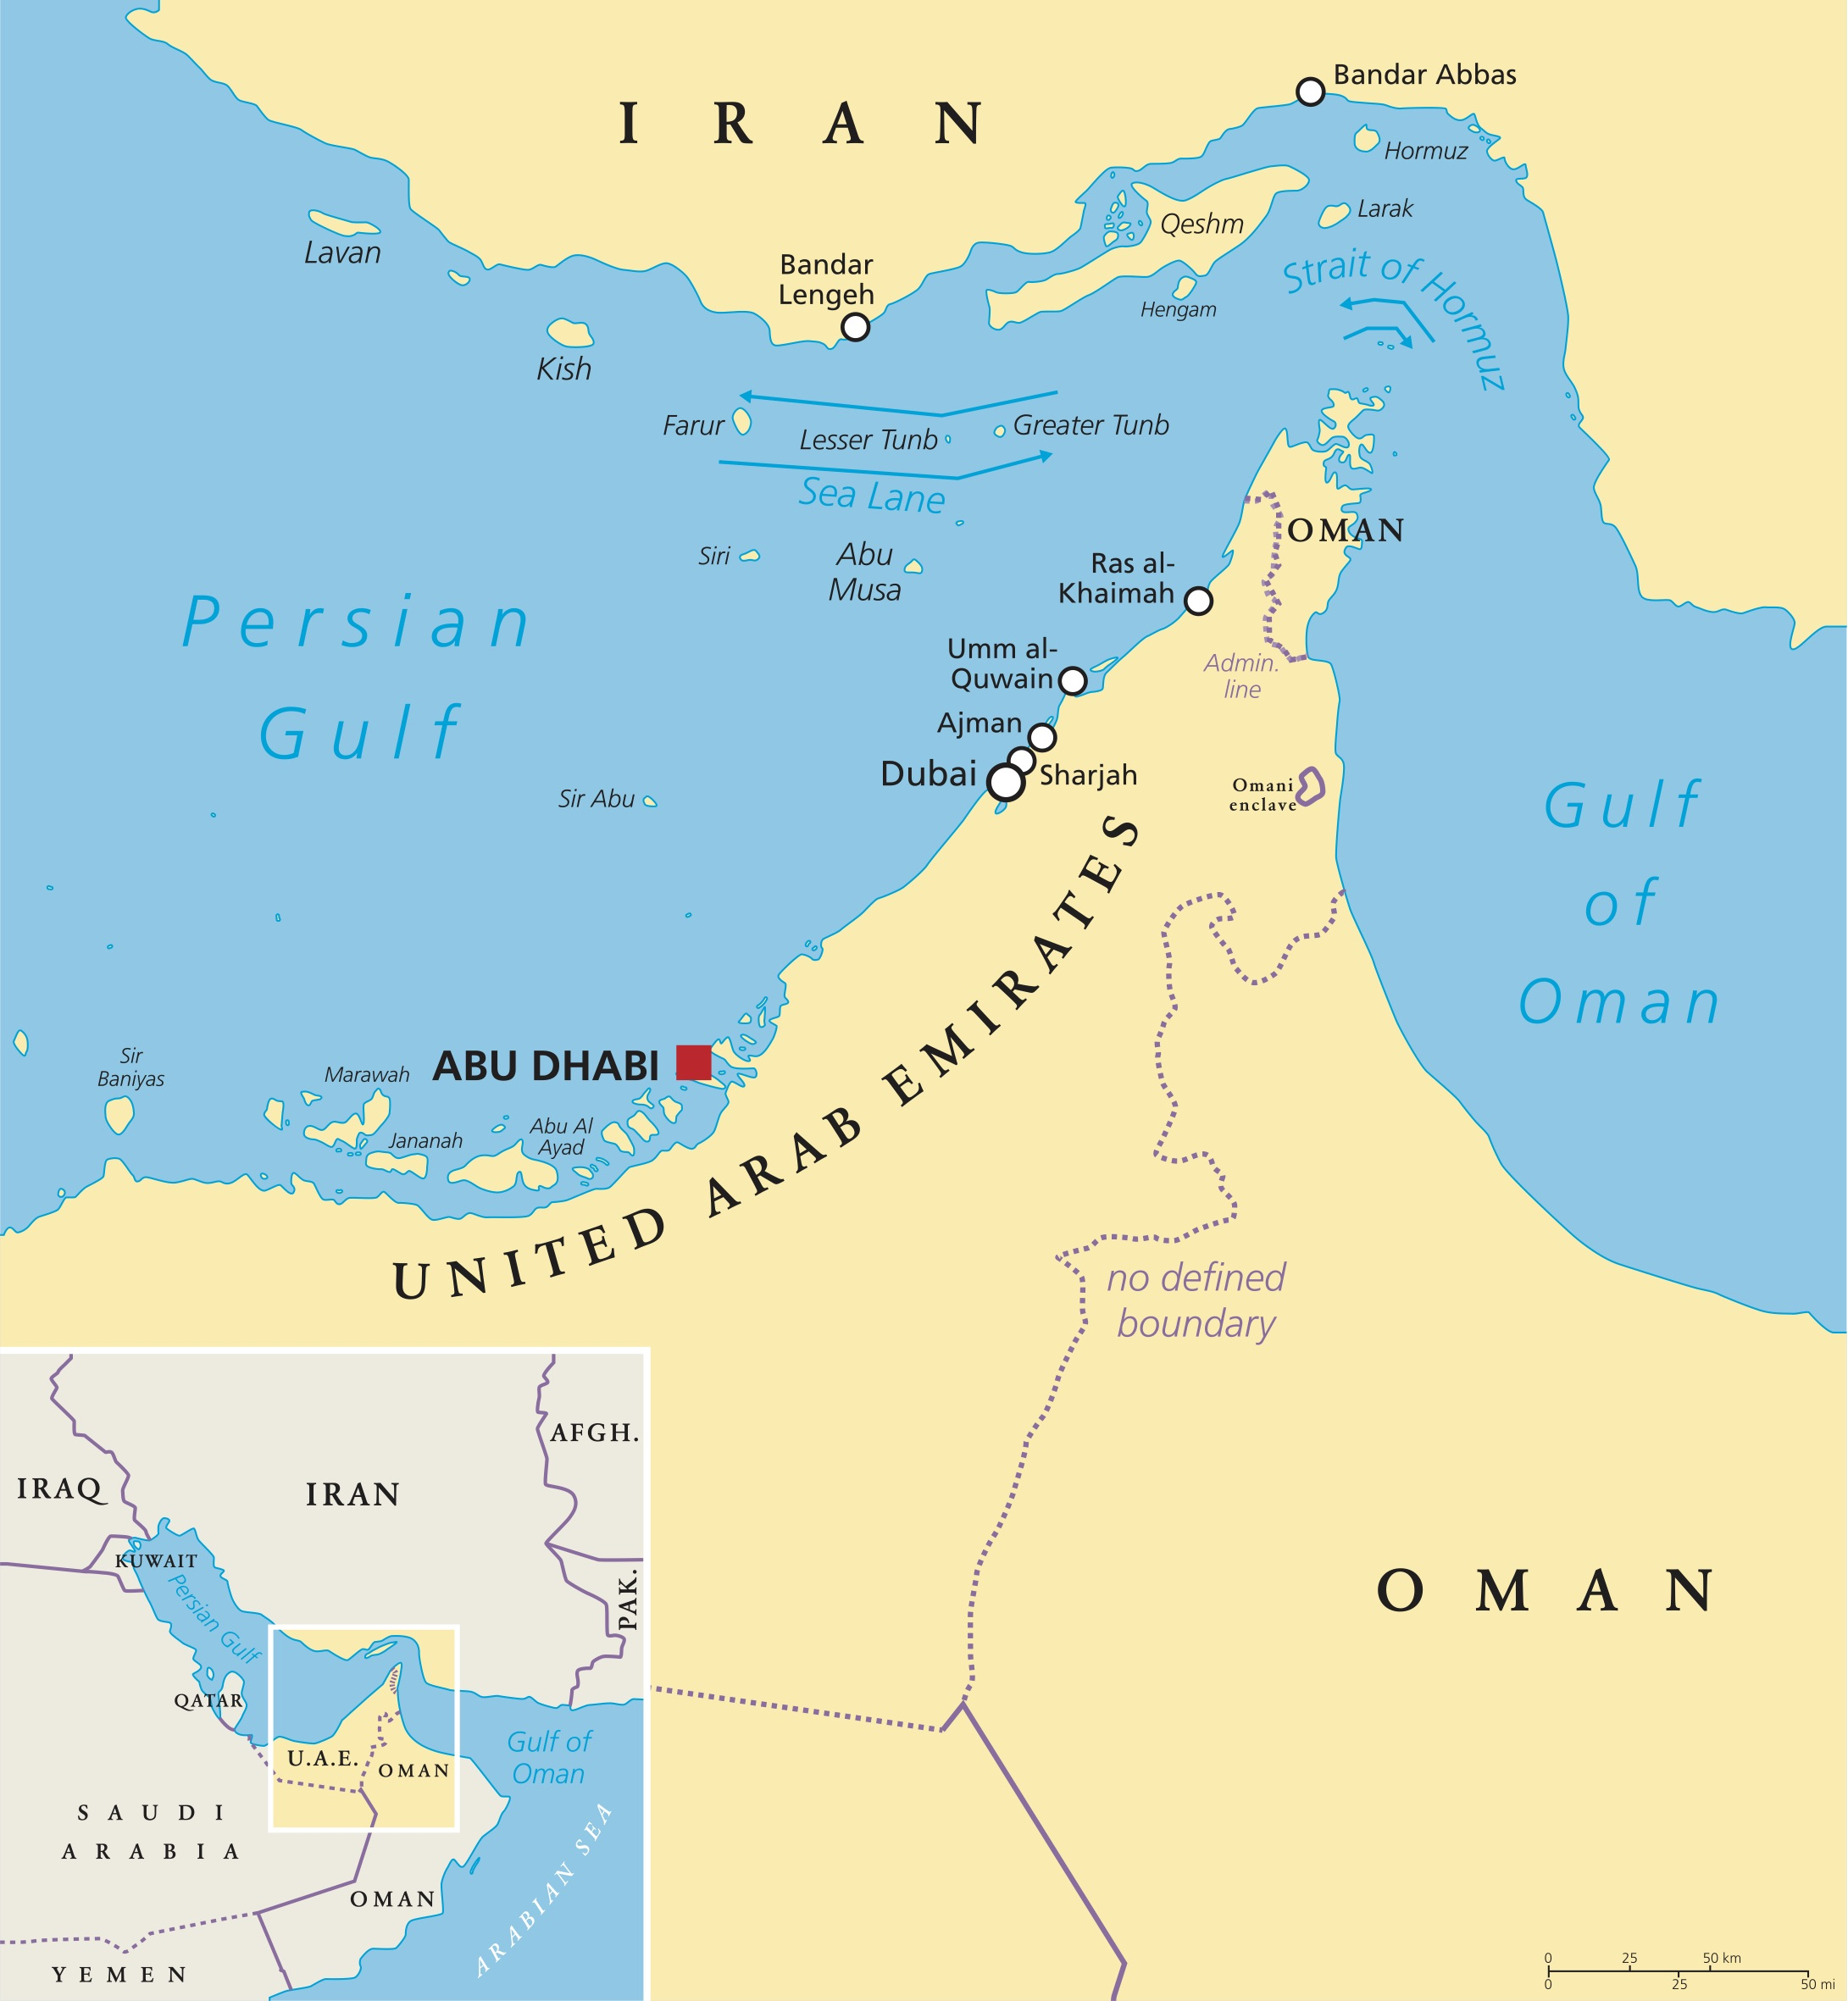 Strait of Hormuz, Abu Musa and the Tunbs political map. The Strait is the only sea passage from Persian Gulf to Arabian Sea and one of the most strategically important choke points in world